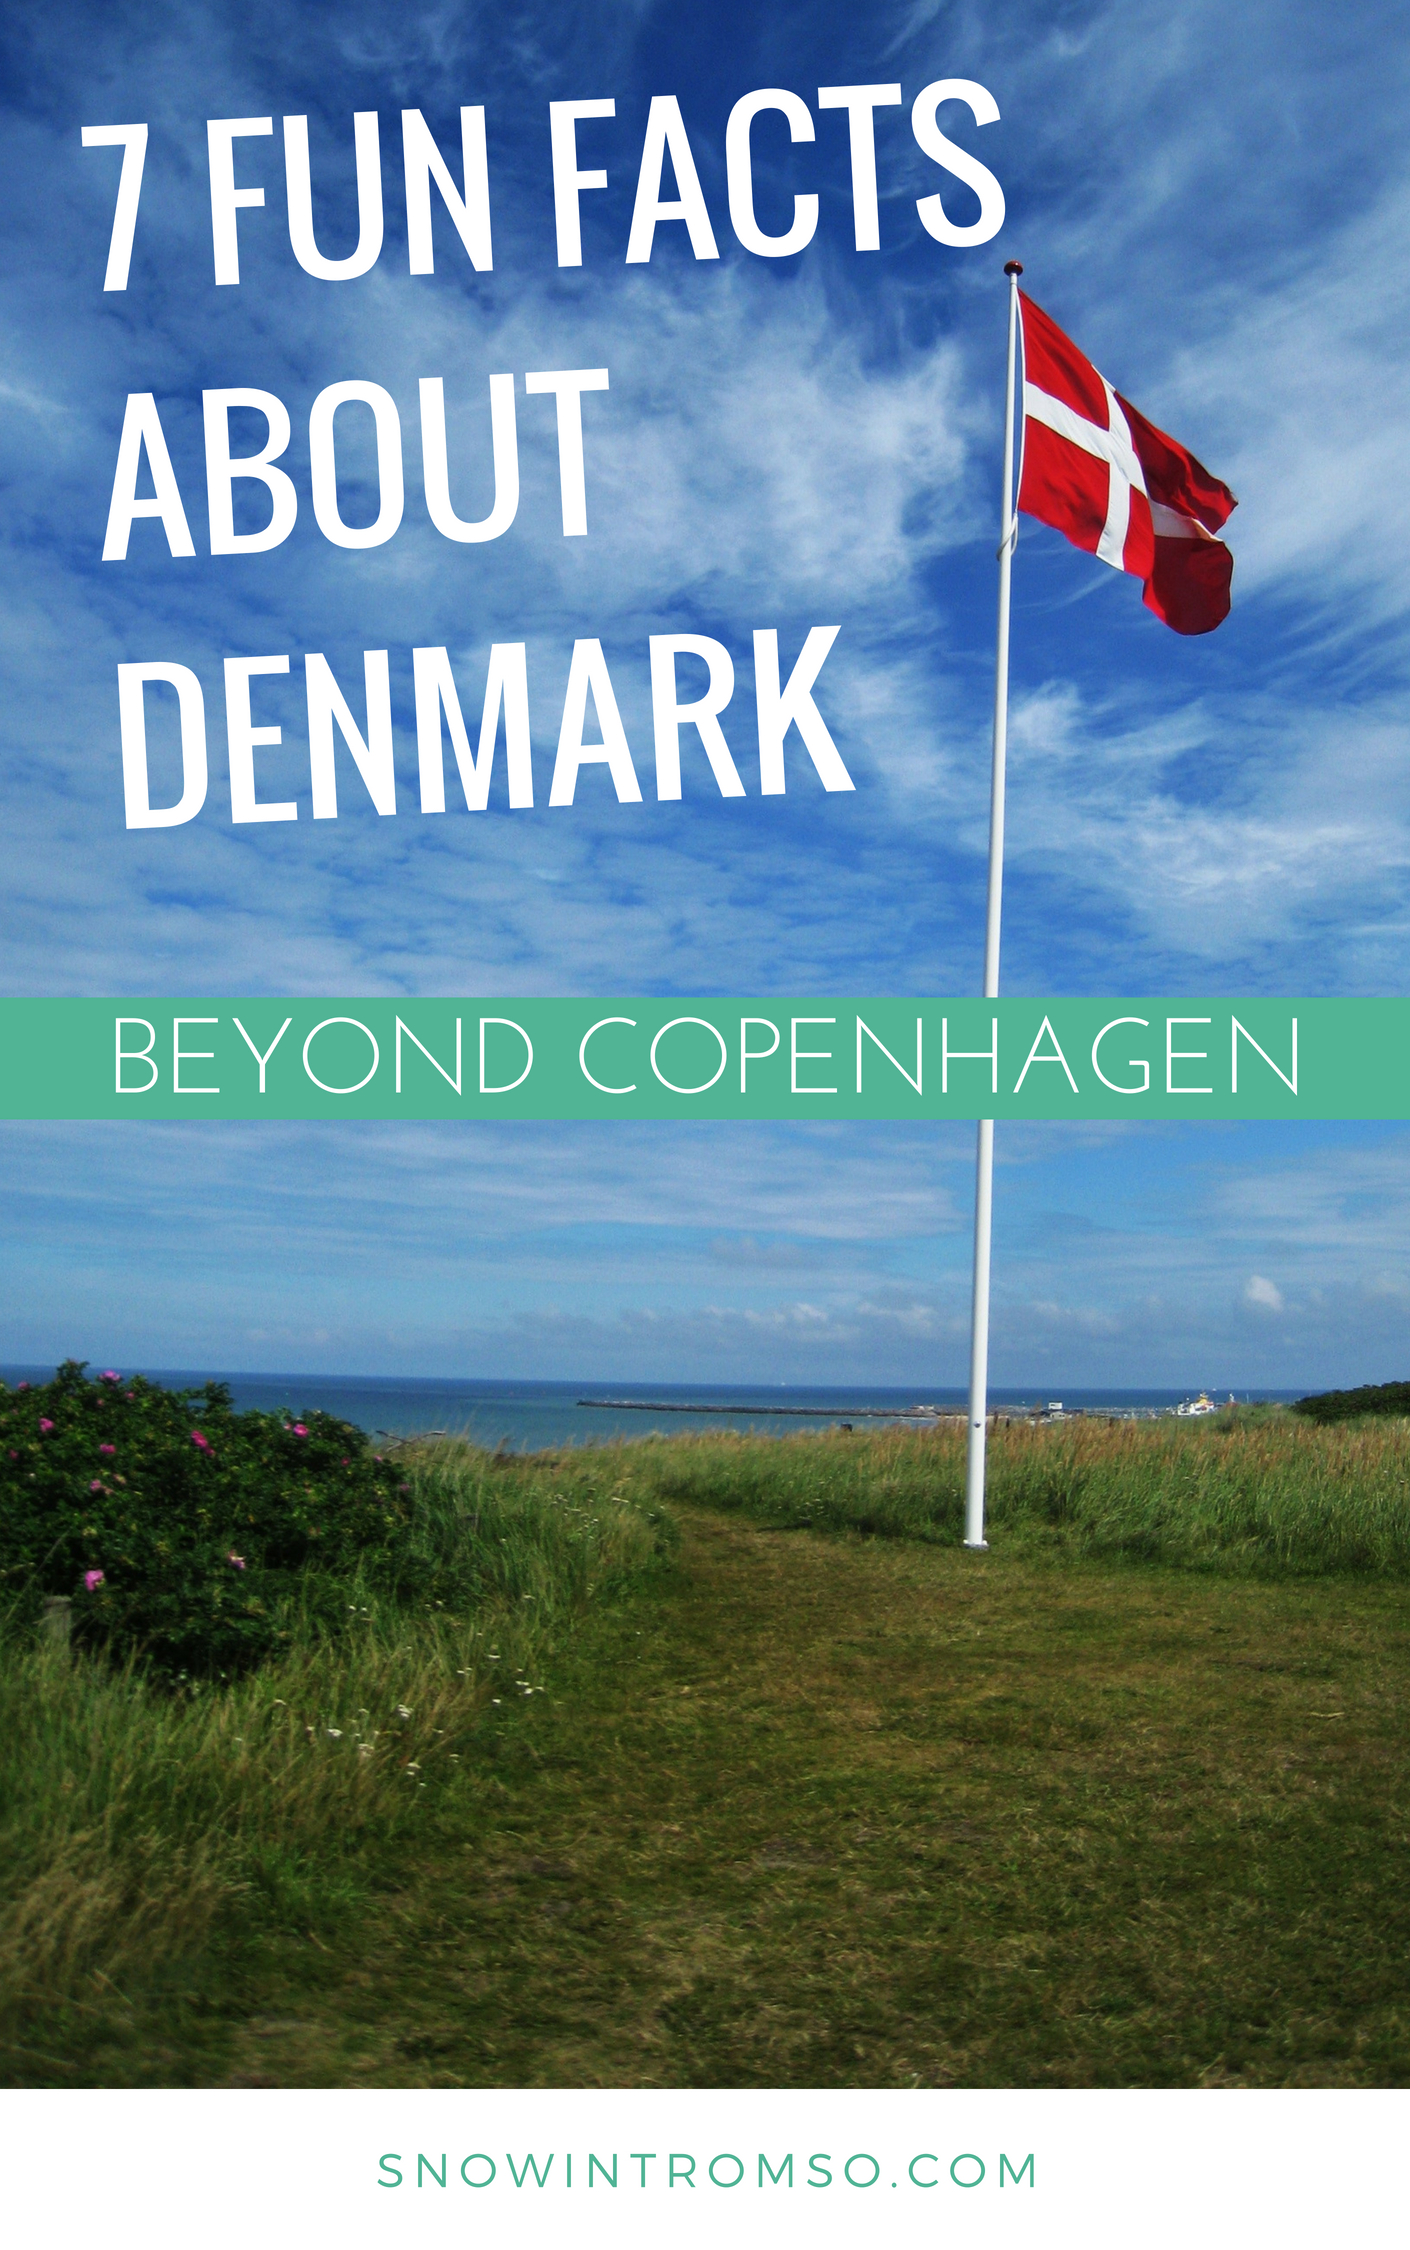 Click through to read which surprising facts I learnt about Denmark when I ventured beyond Copenhagen!